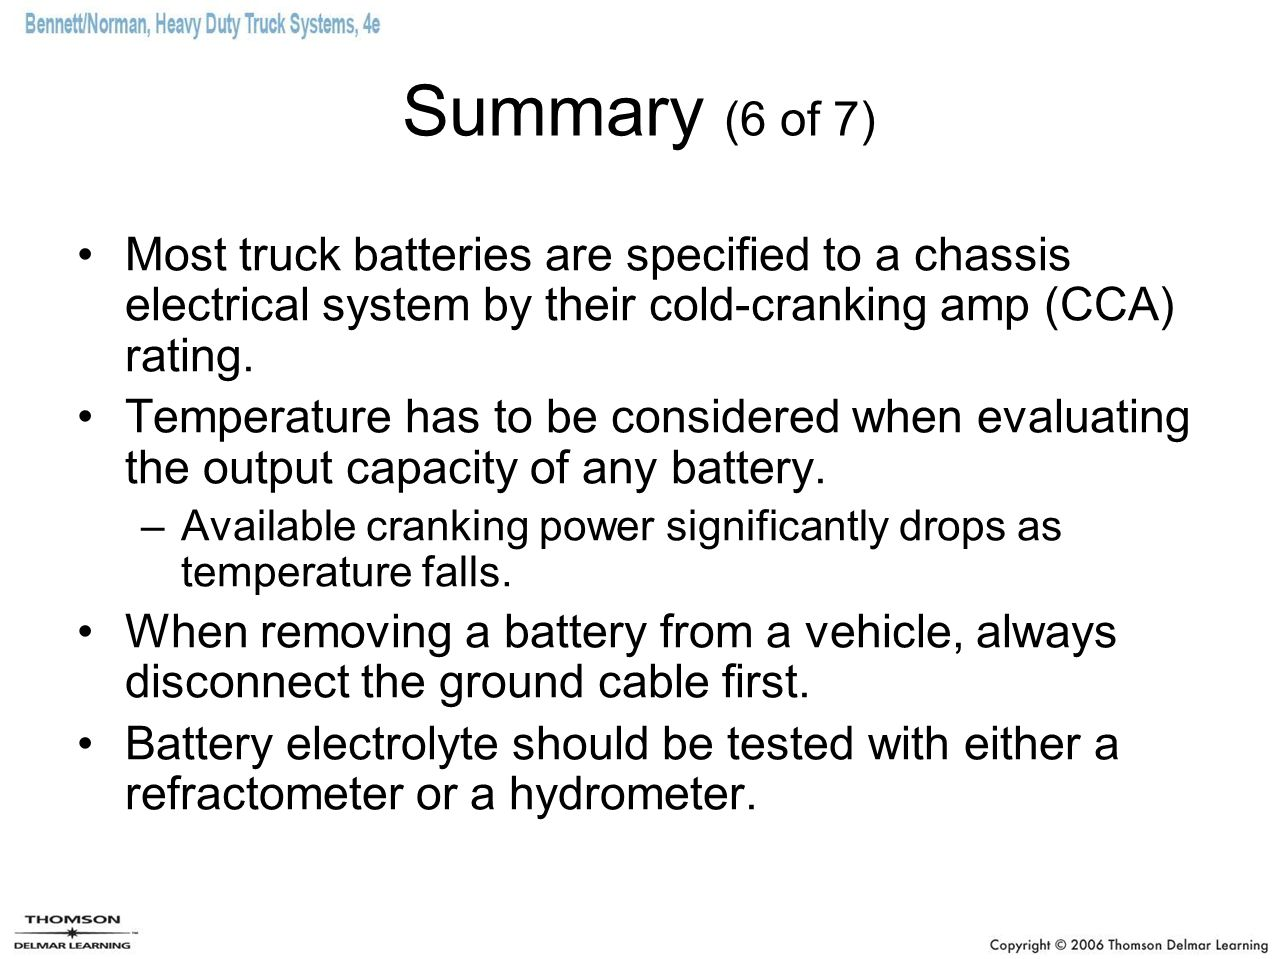 Summary (6 of 7) Most truck batteries are specified to a chassis electrical system by their cold-cranking amp (CCA) rating.